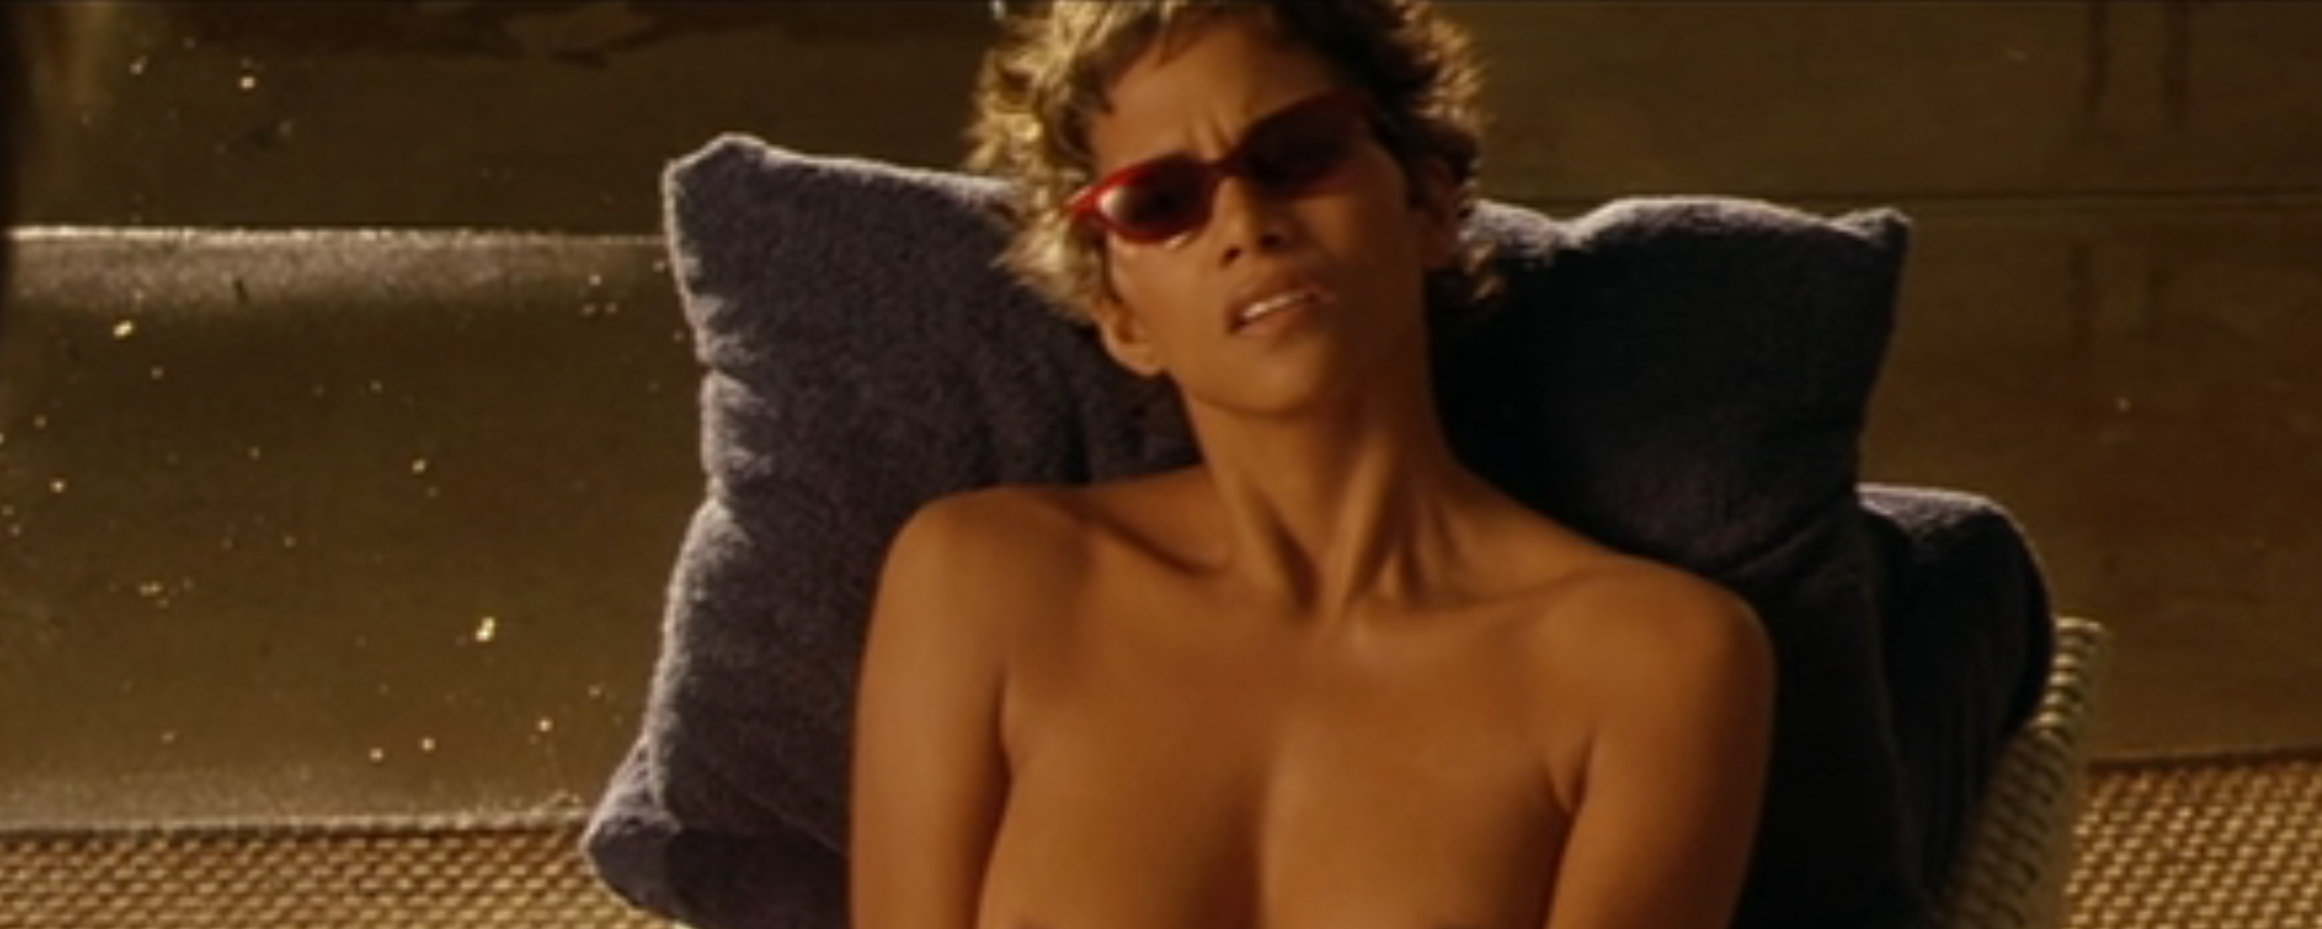 Halle berry swordfish scene not present